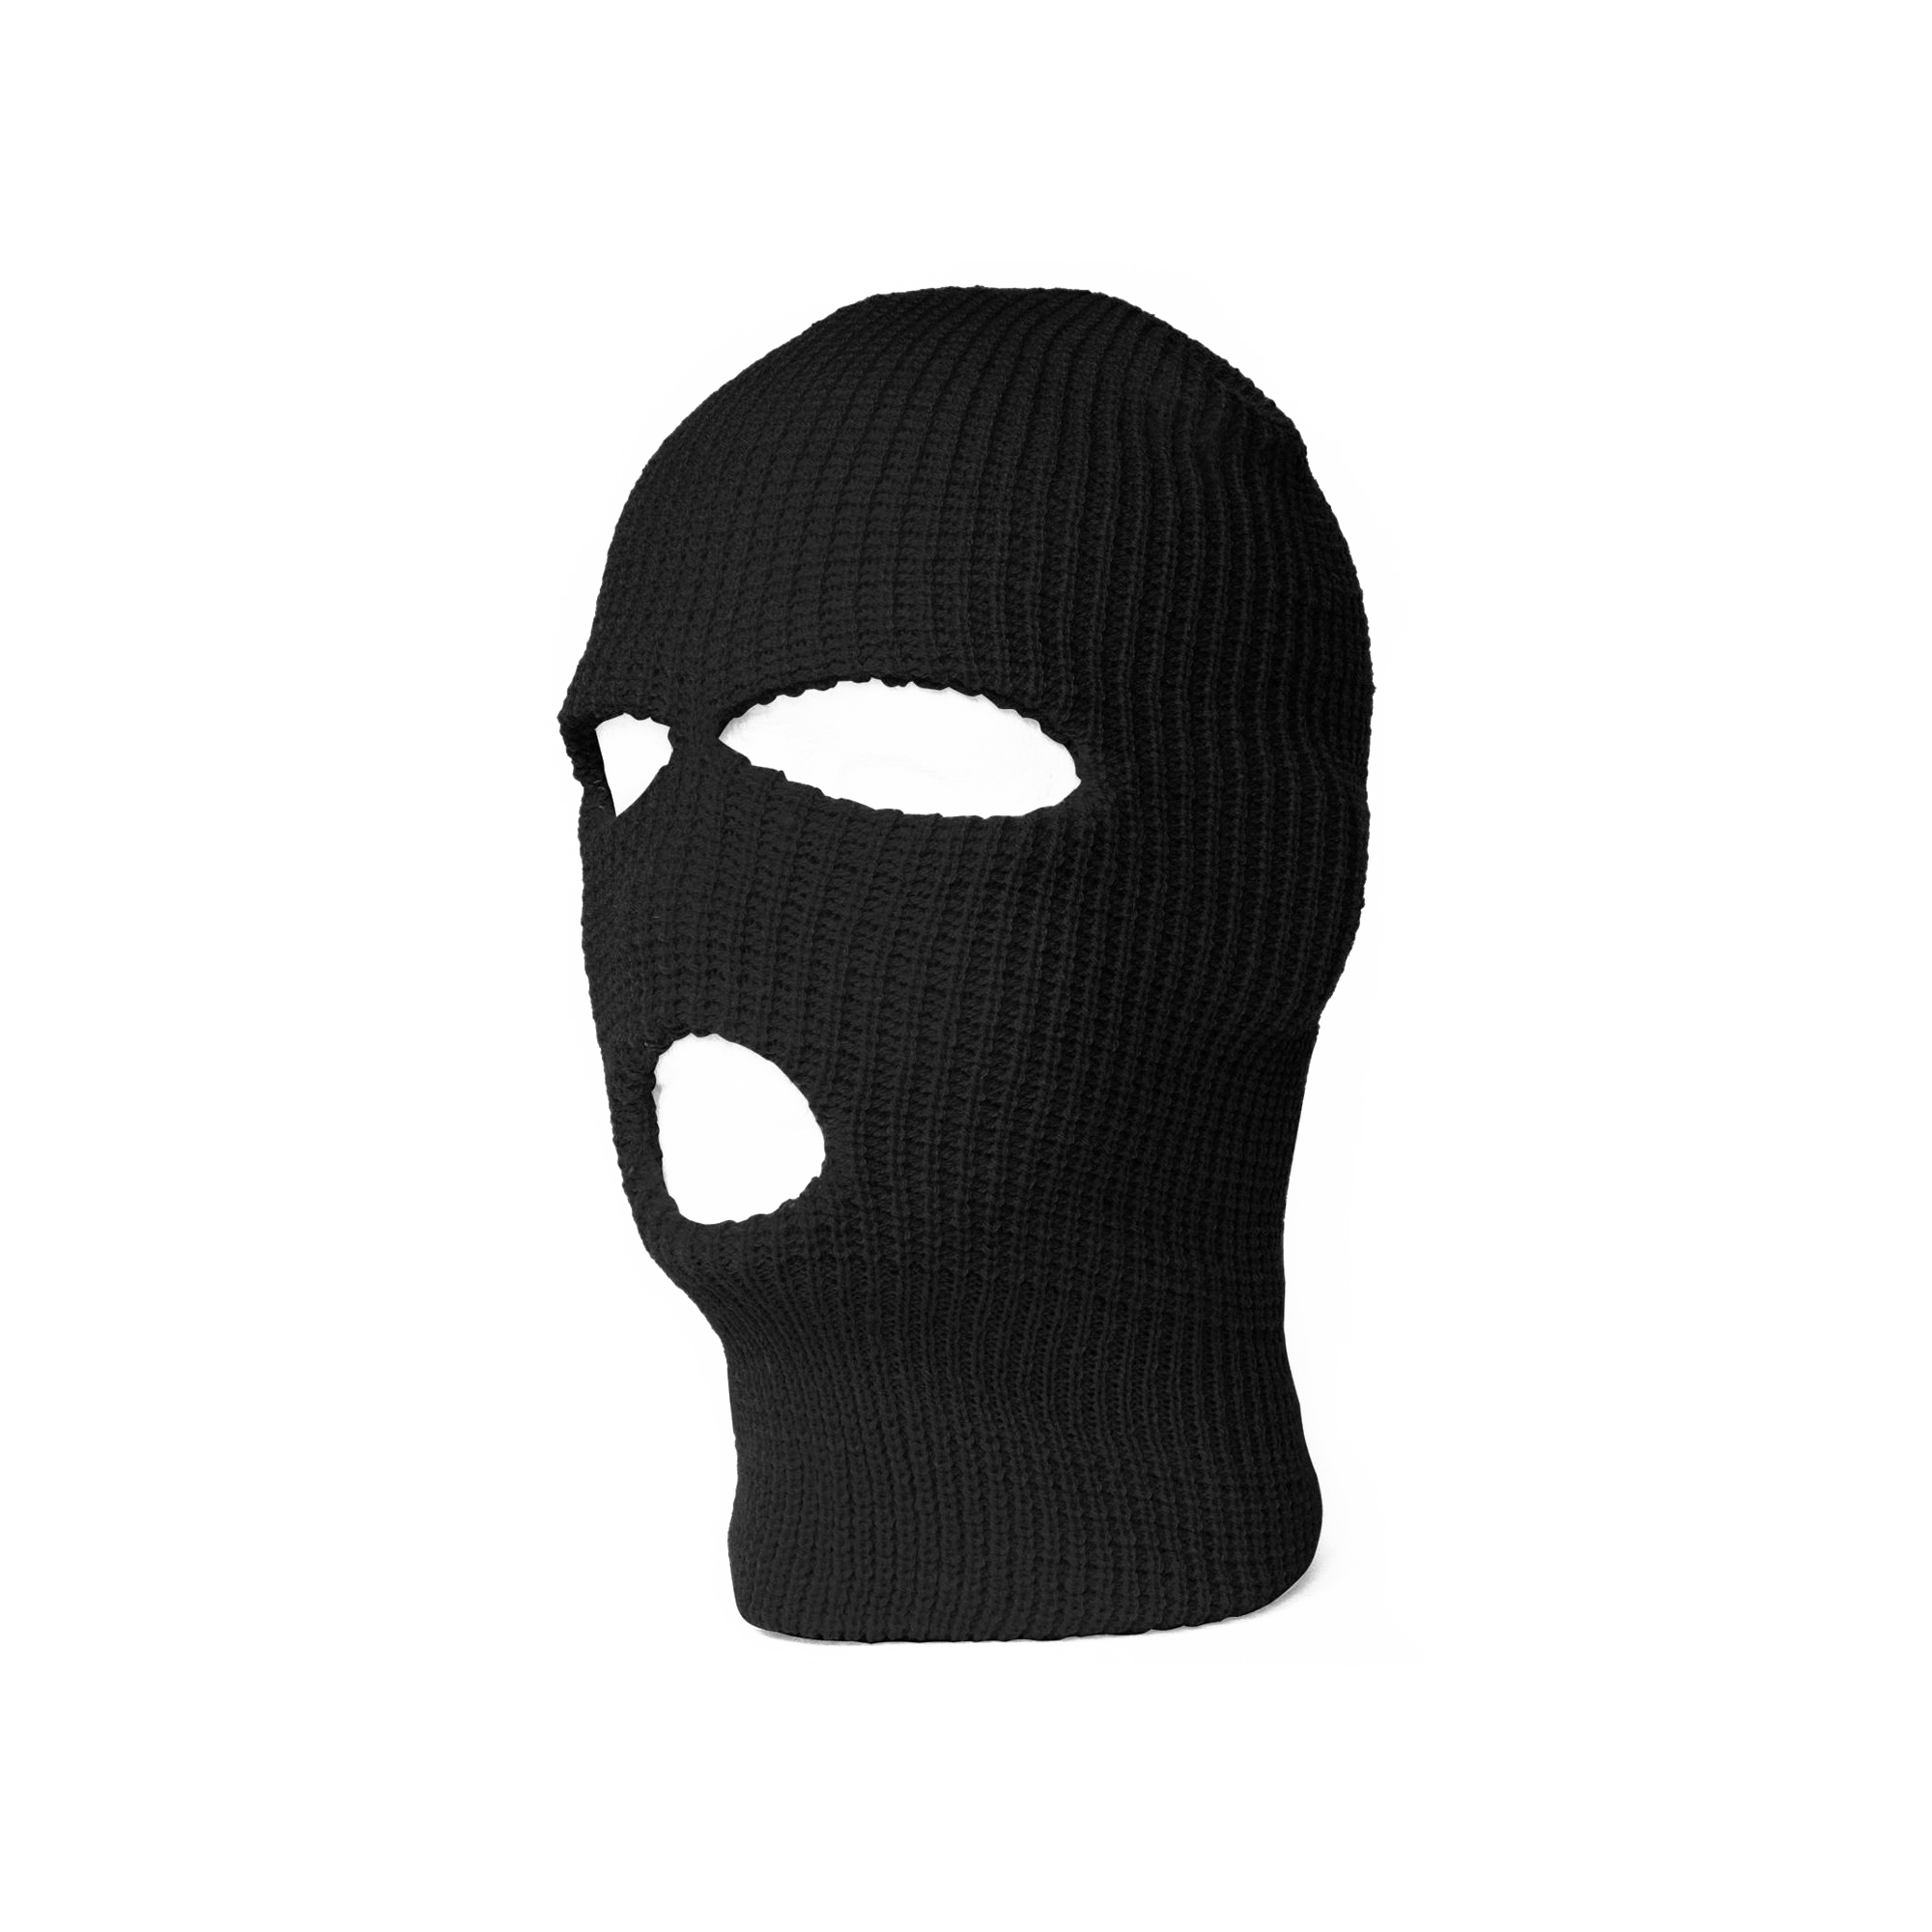 Balaclava Transparent File.